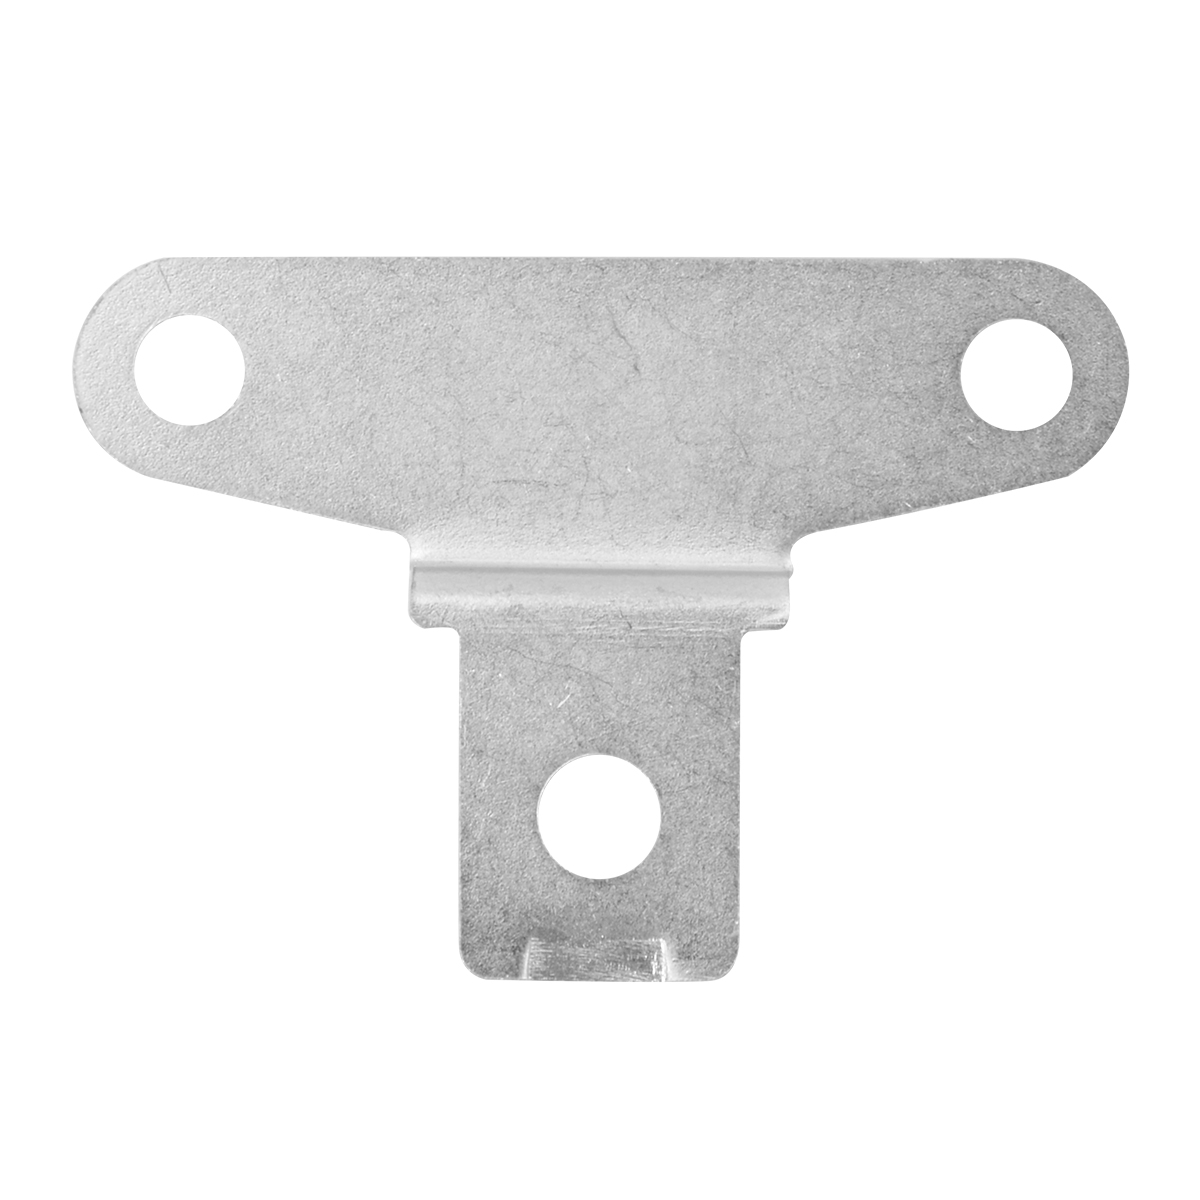 83019 Heavy Duty LED Strobe Flasher Mounting Bracket